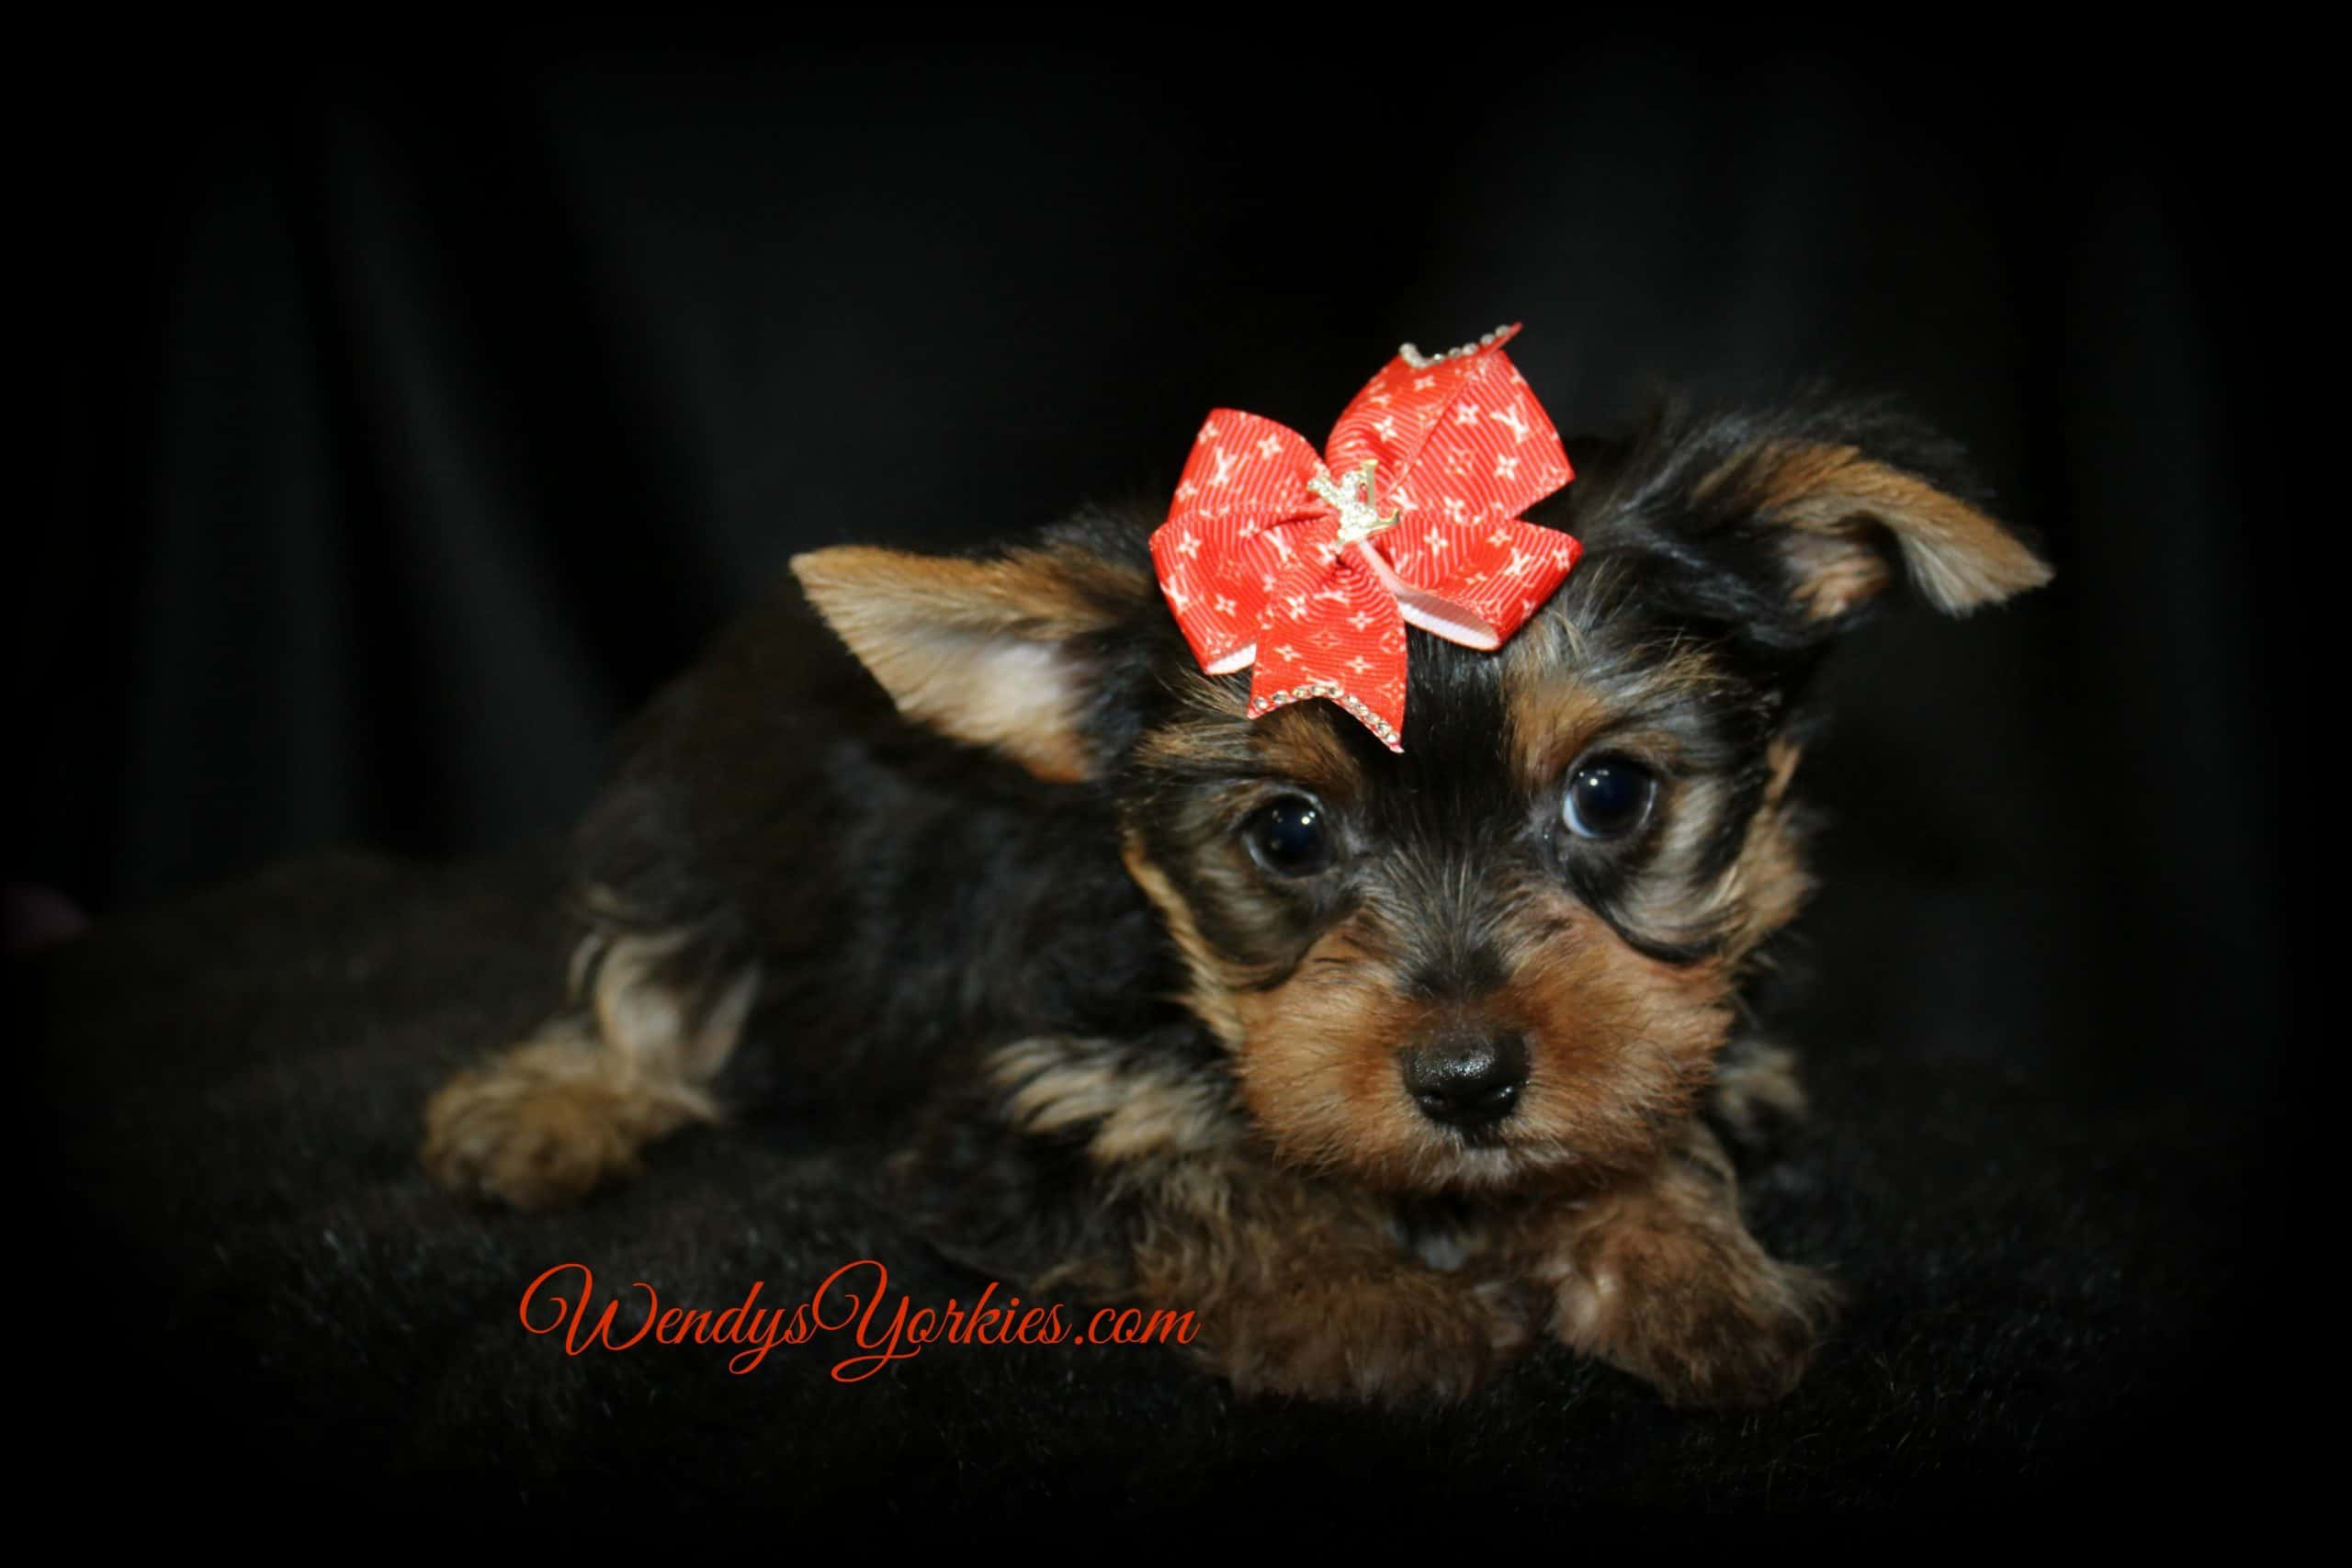 Male Yorkie puppy for sale, TG M1, WendysYorkies.com